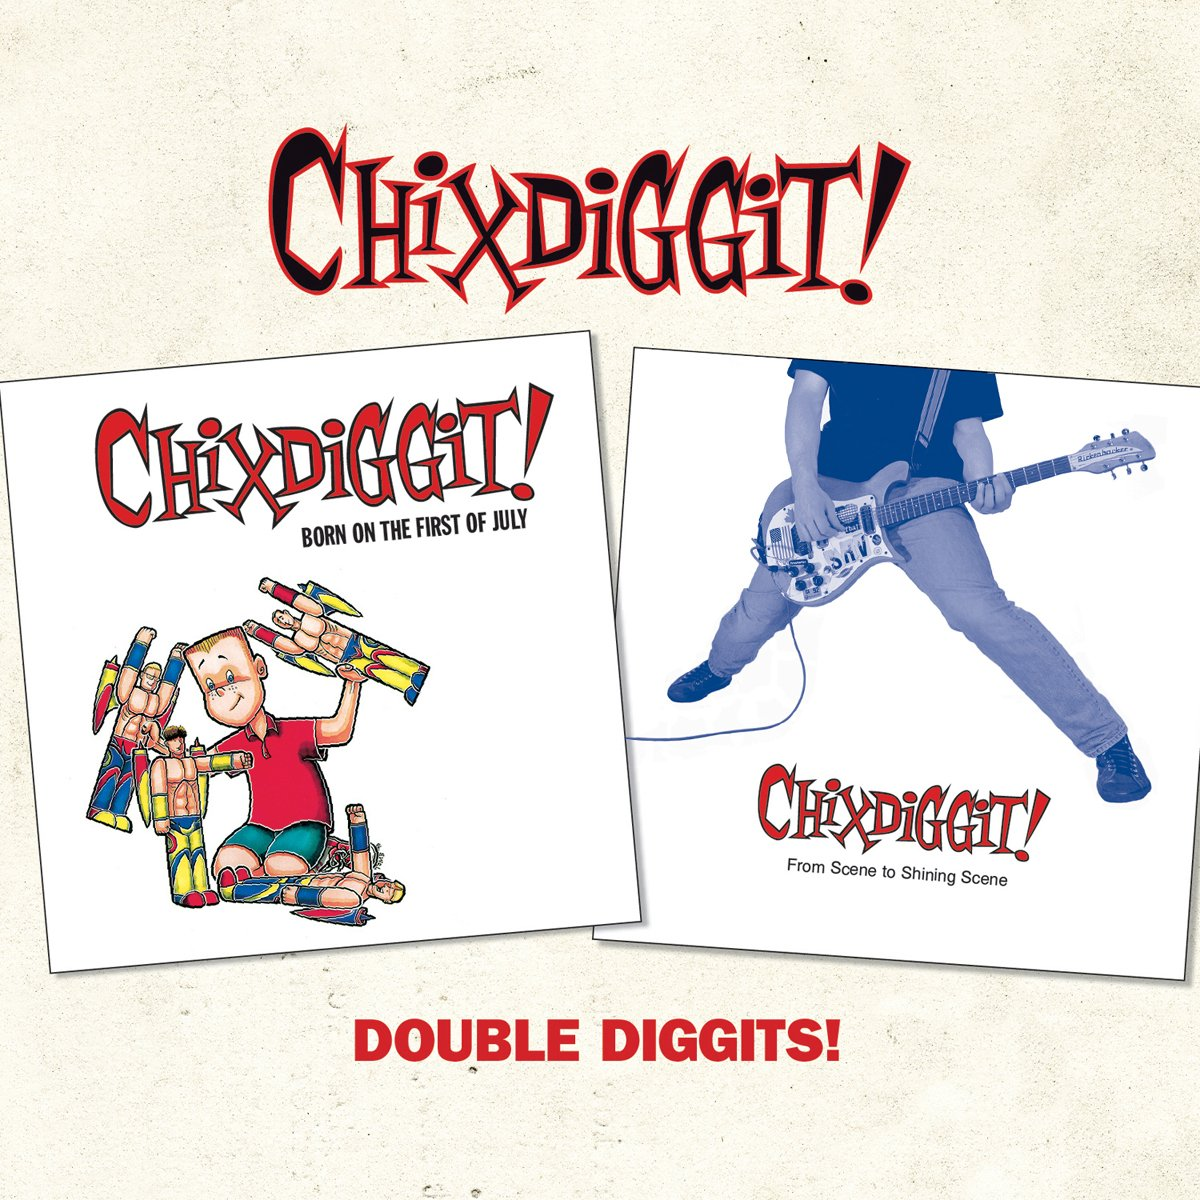 CD : Chixdiggit! - Double Diggits! (CD)